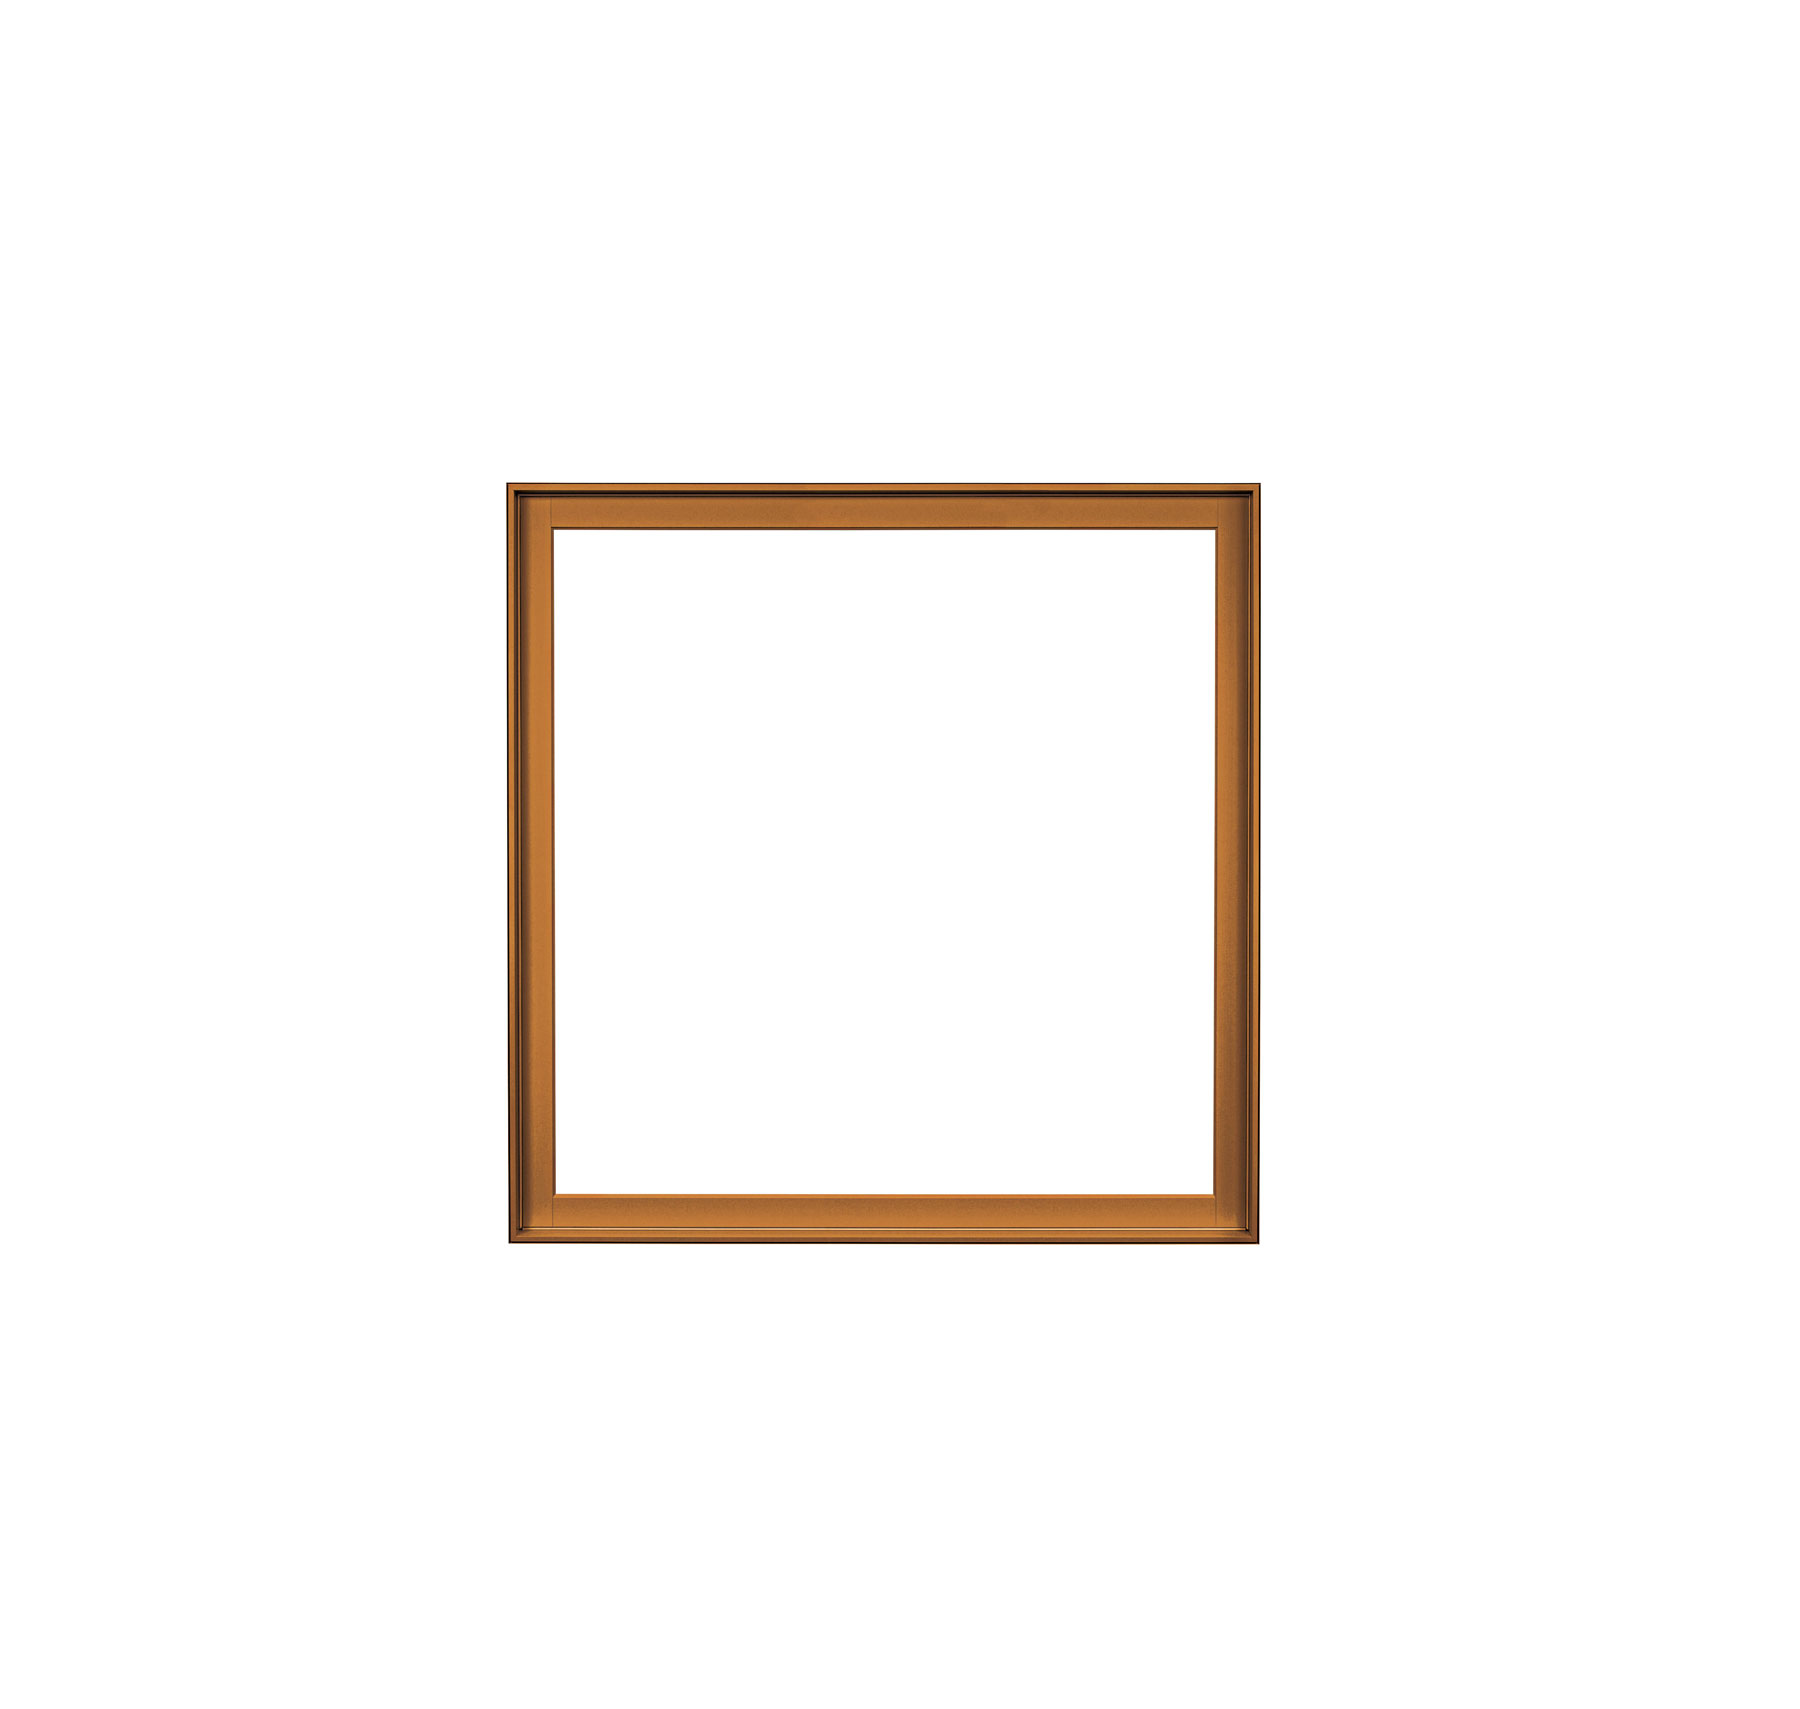 Types of Windows - Picture (or Fixed) Window